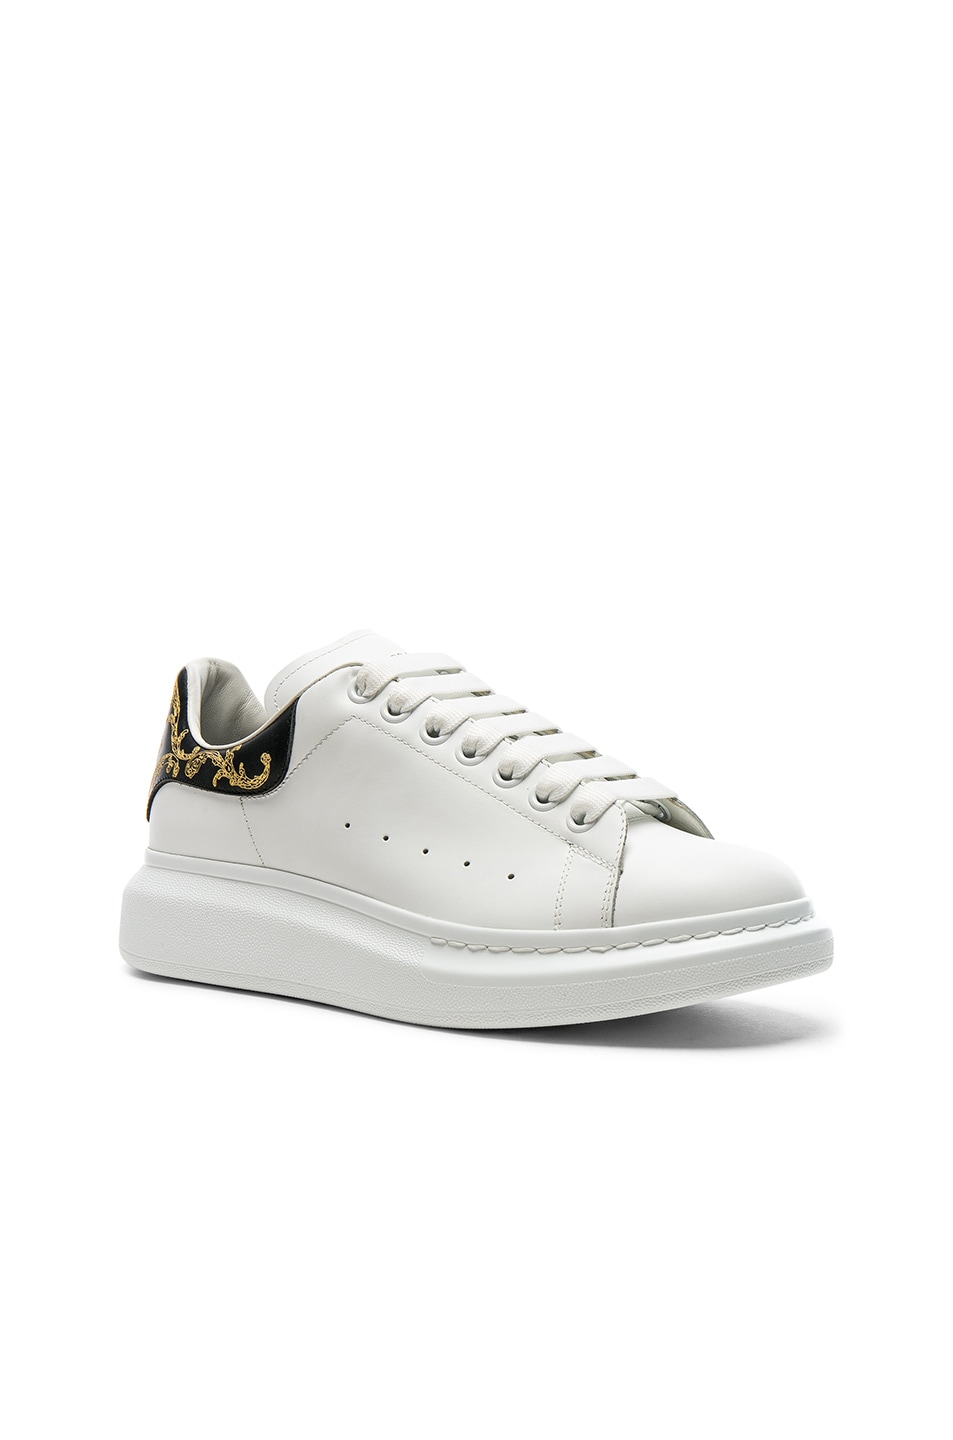 cdfde76c4d0e Image 1 of Alexander McQueen Leather Platform Sneakers in Black   White